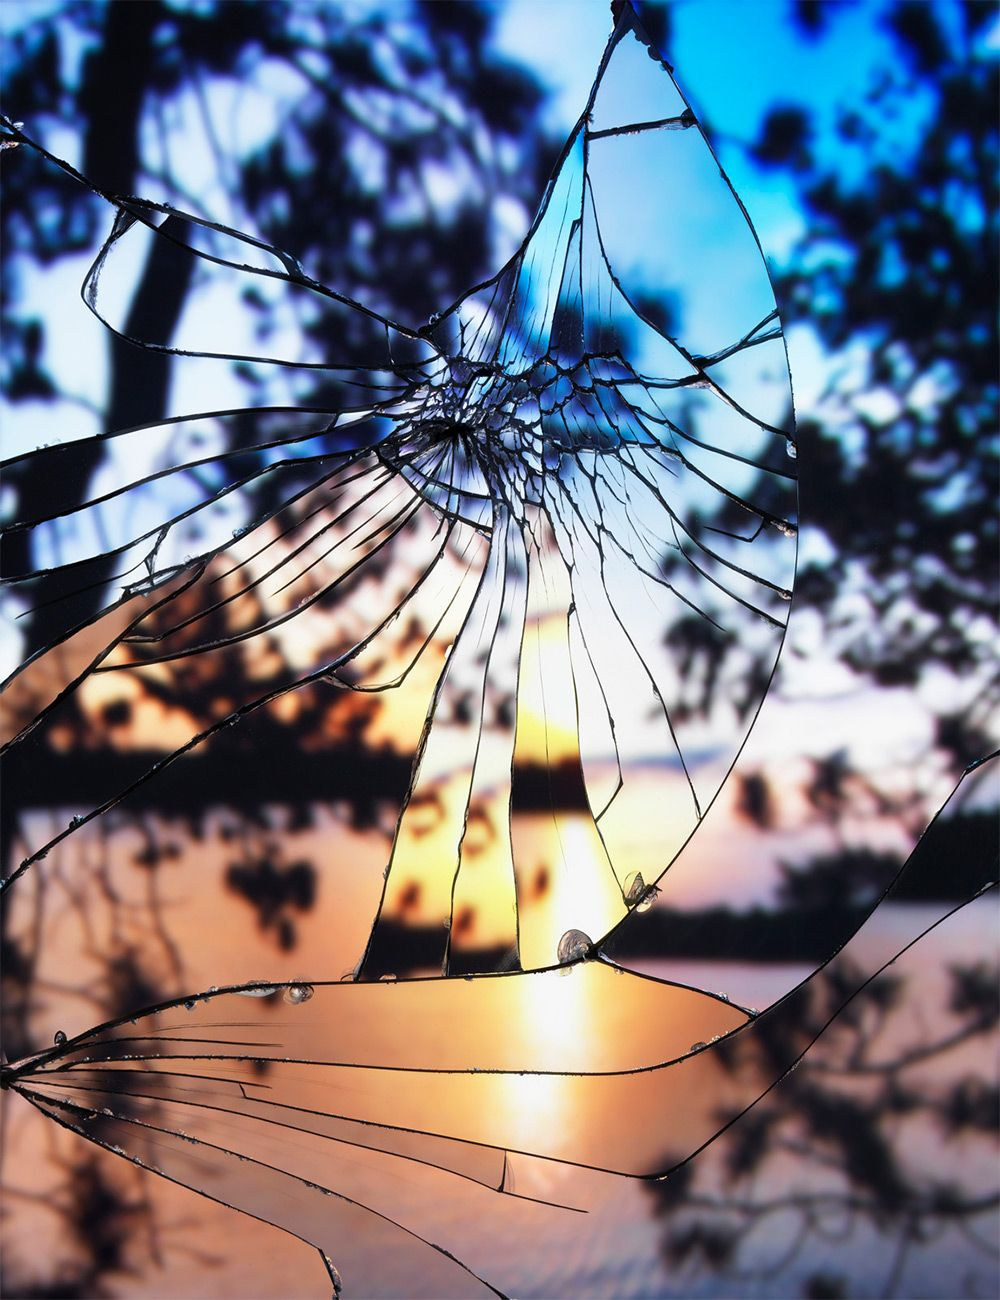 Photographs of Sunsets as Reflected through Shattered Mirrors by Bing Wright http://ecameraeffects.com/be-better-photographer/